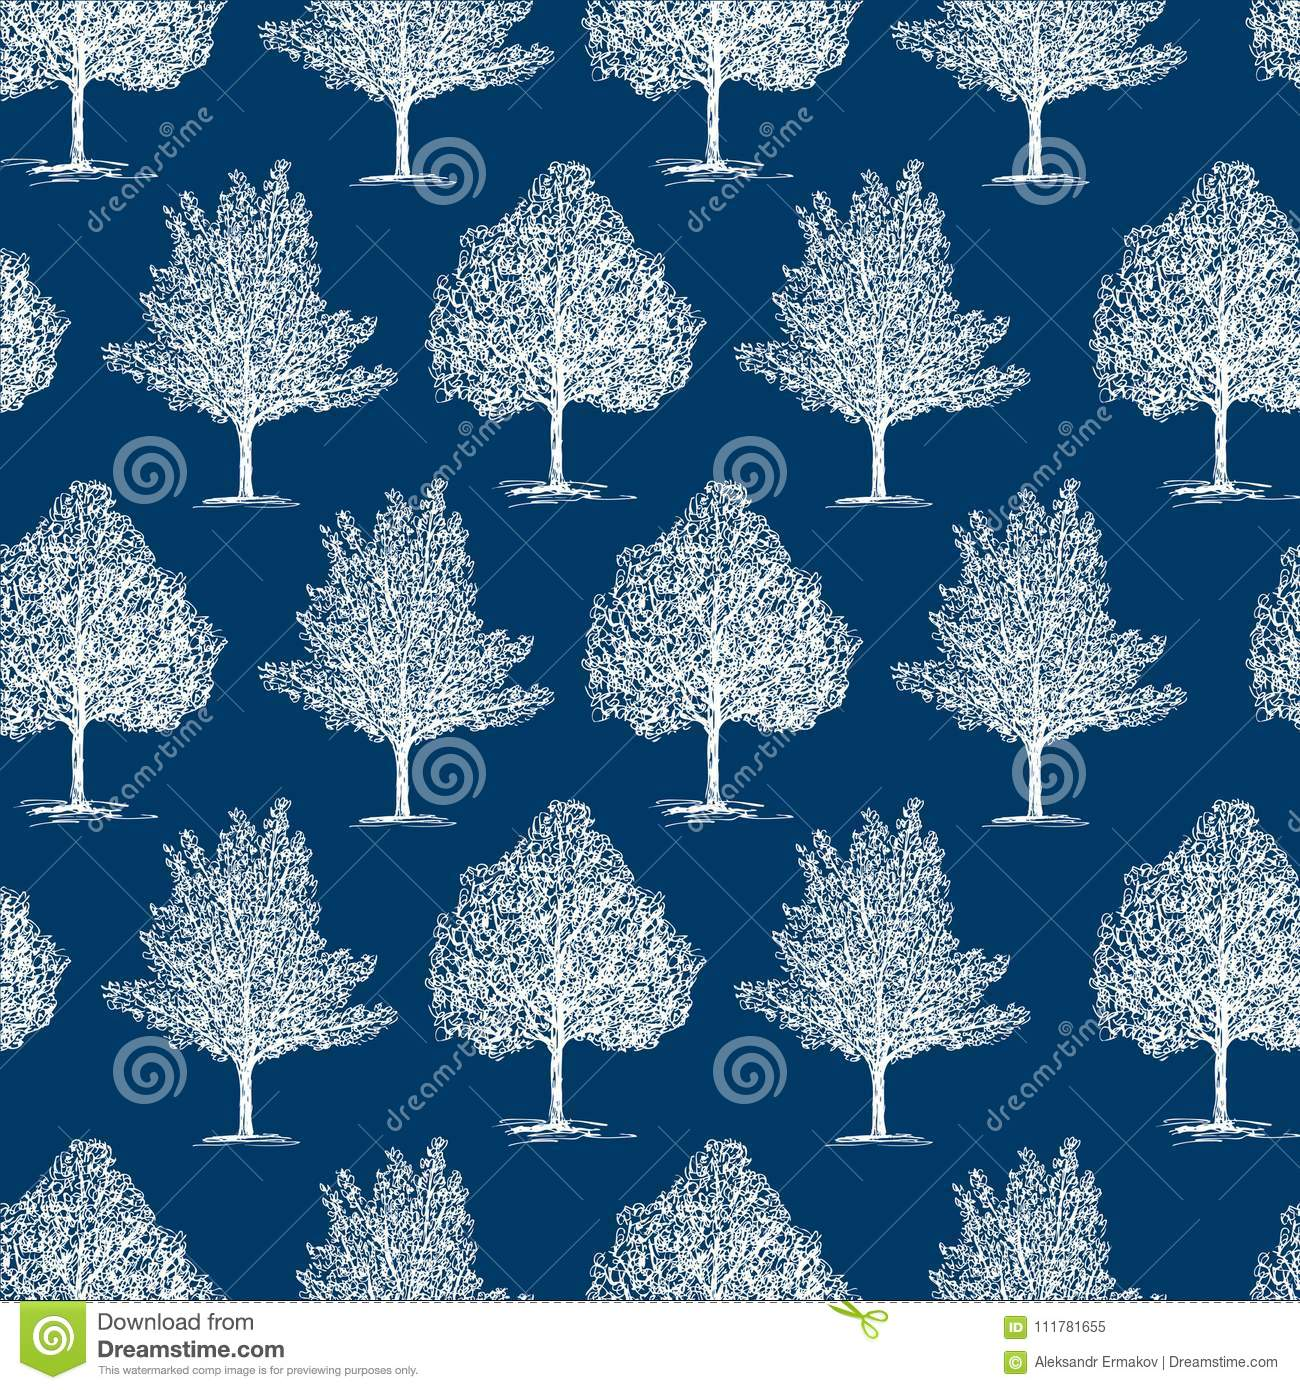 Seamles background of the frozen trees